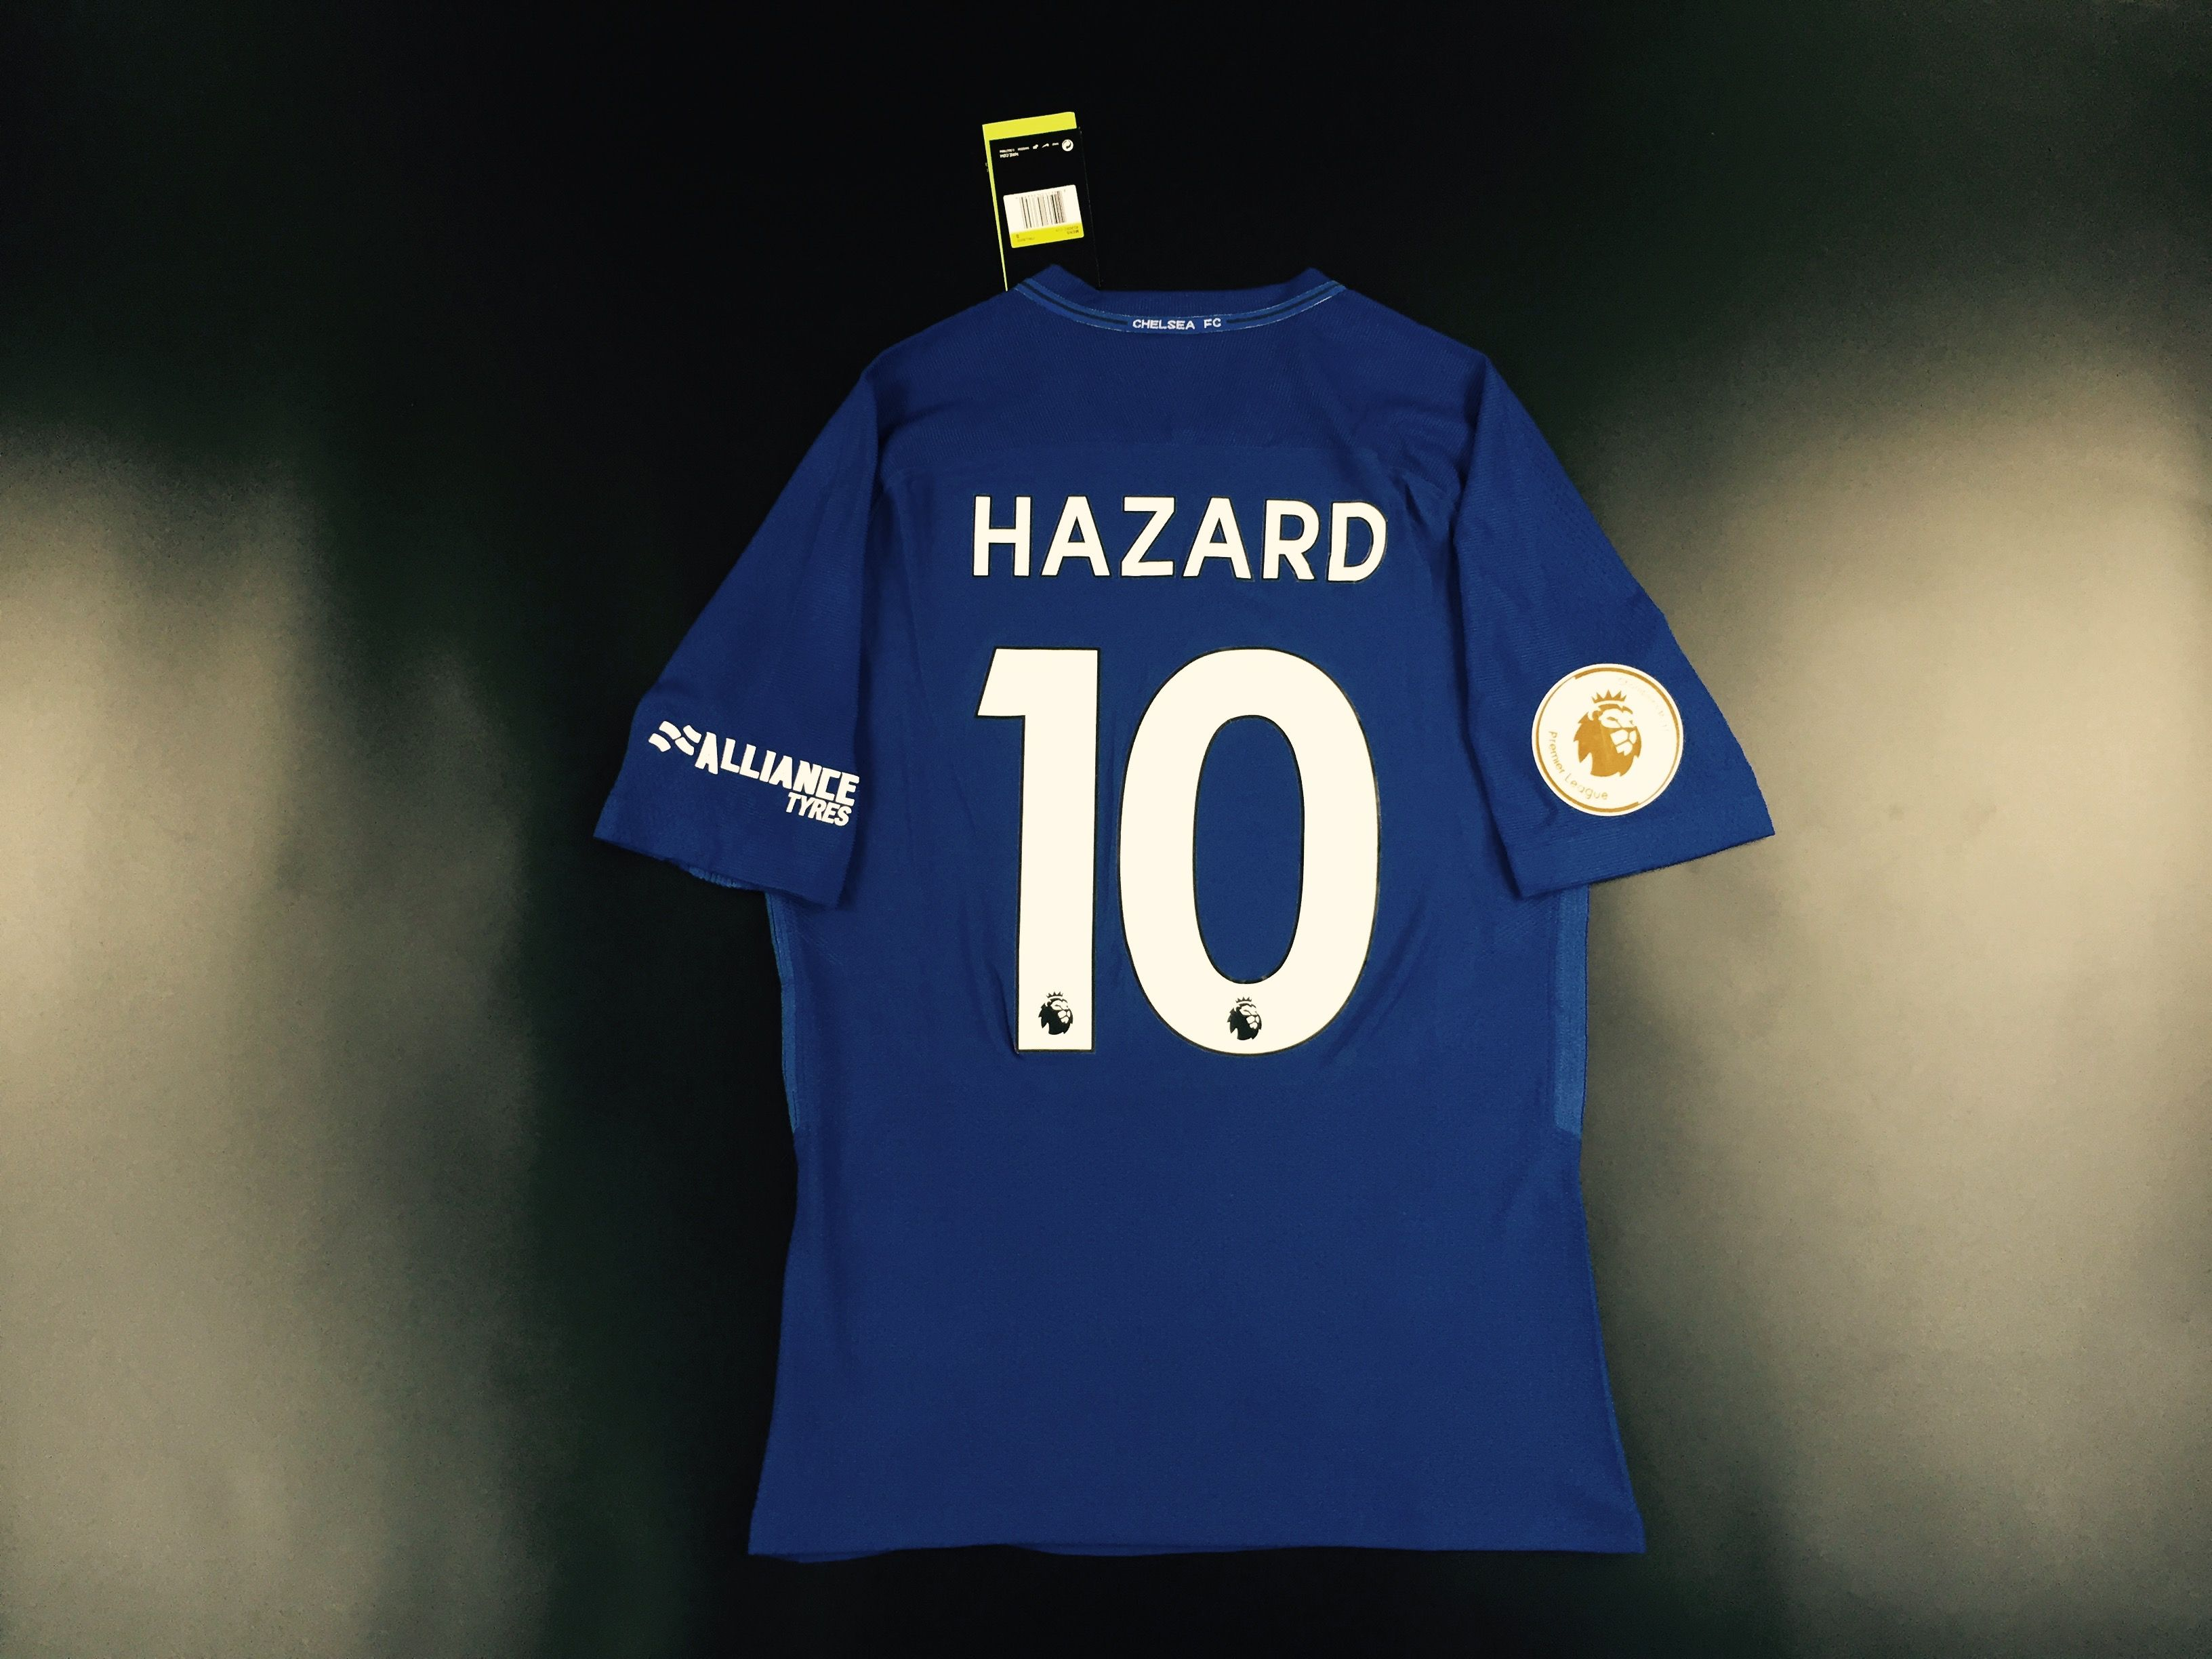 Chelsea Home soccer jersey  10 hazard with patch 1e7c58746